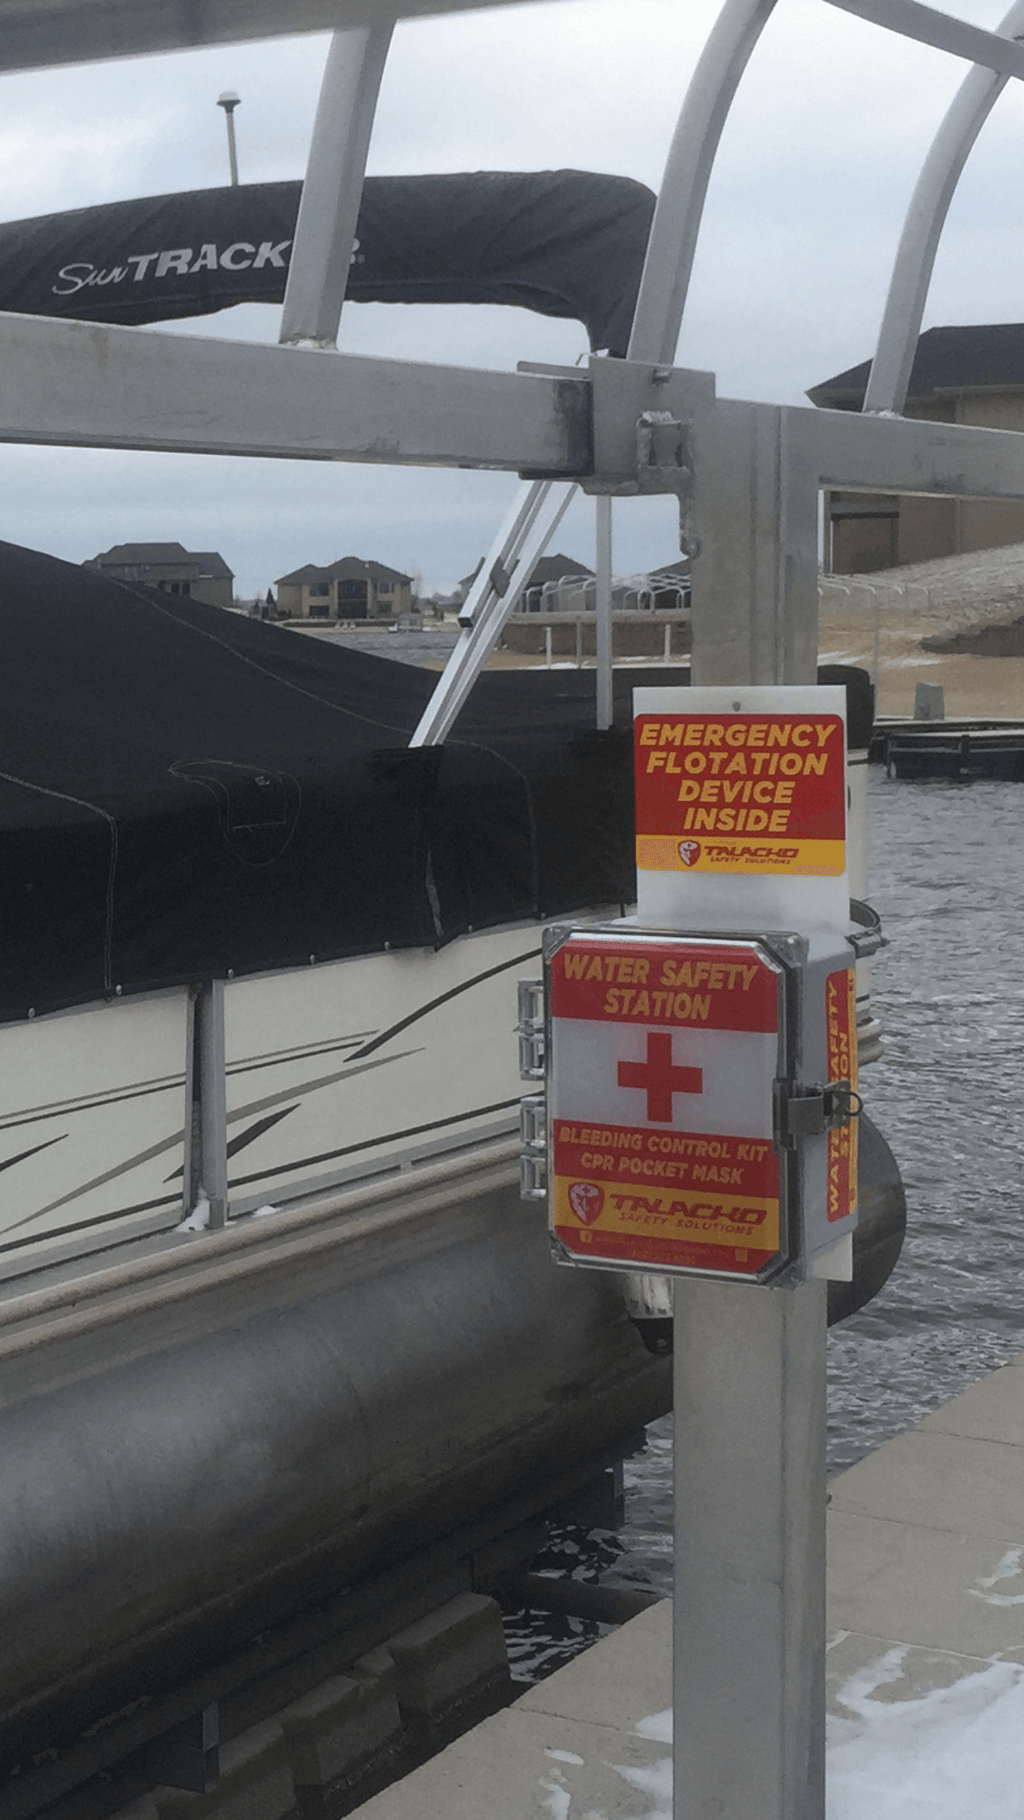 Water Safety Station Designed to be placed on boat docks, pools, and bodies of water.